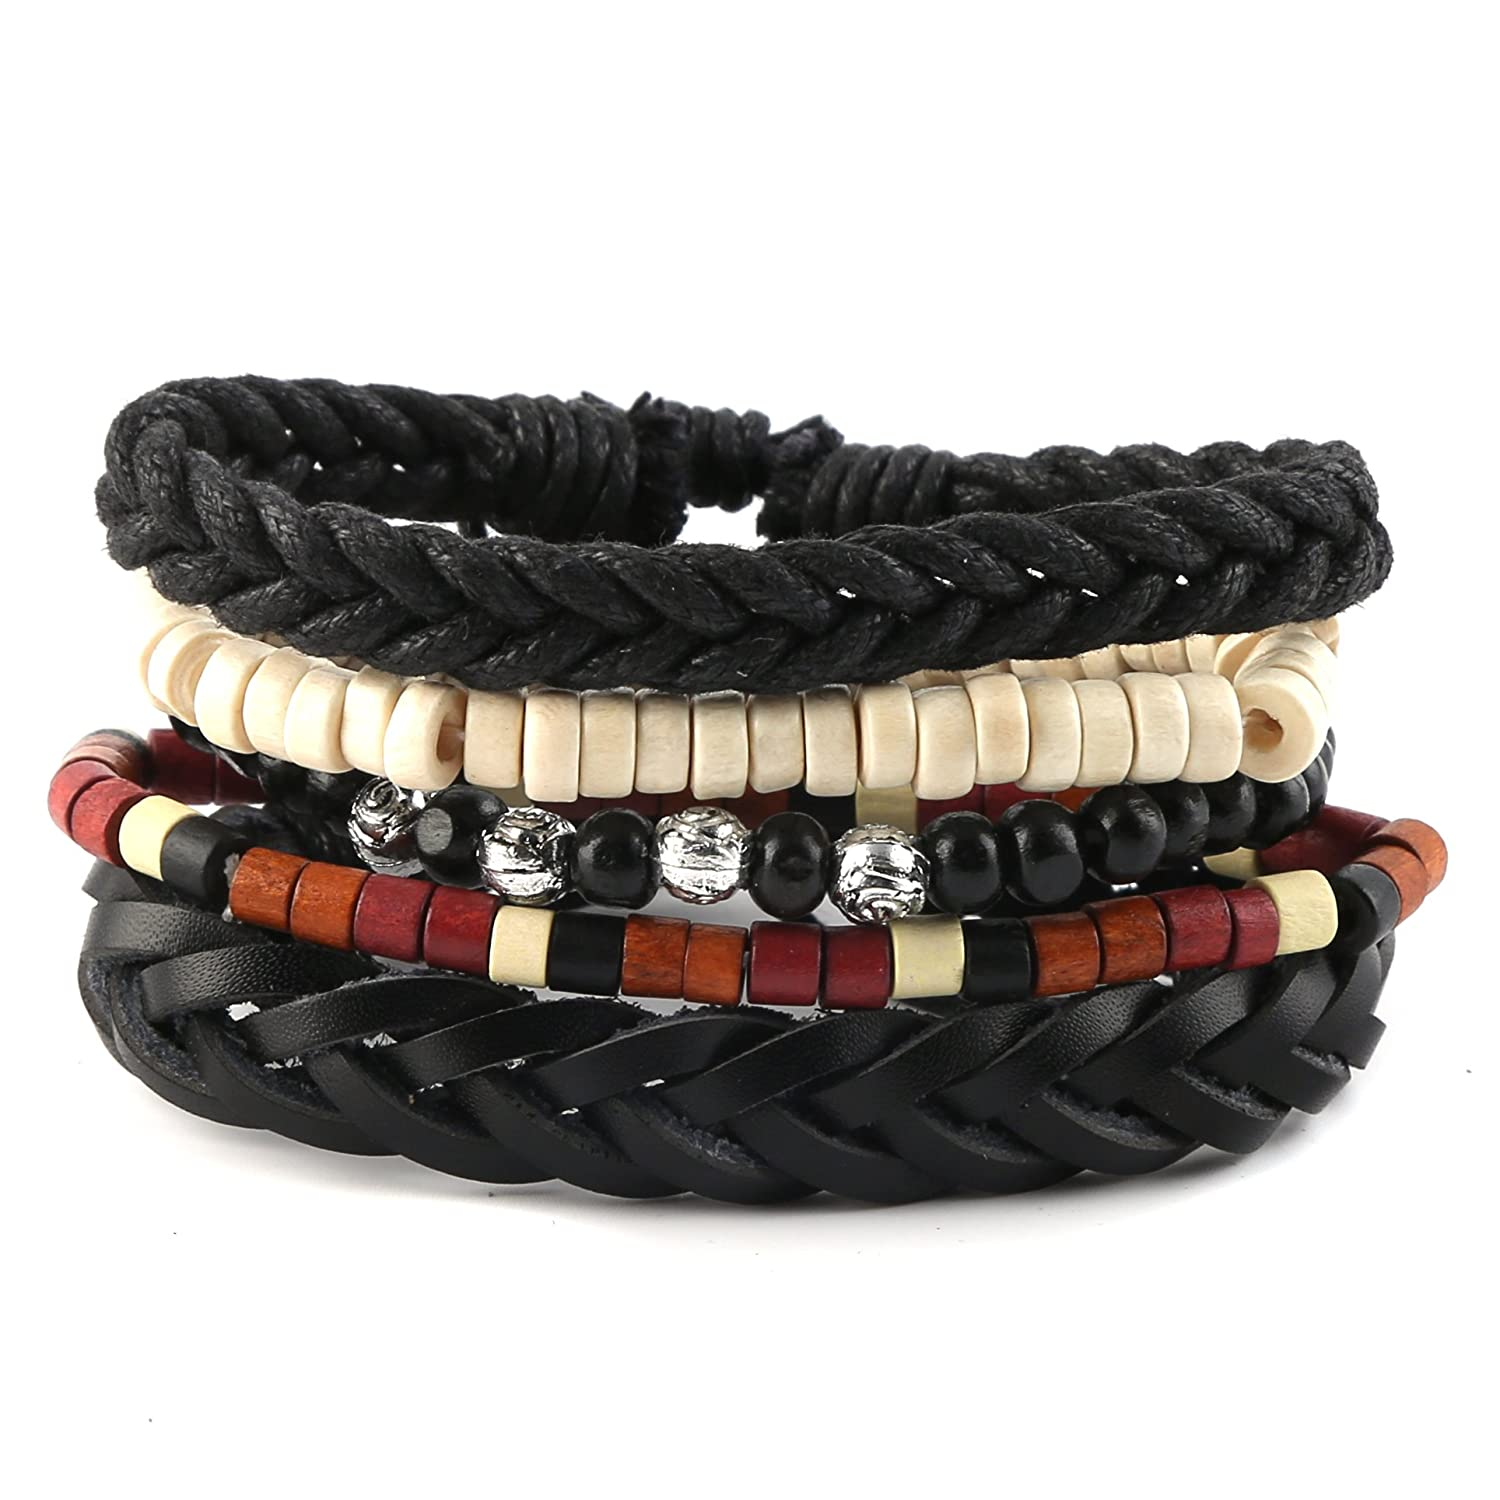 Best Sellers In Men's Cuff Bracelets